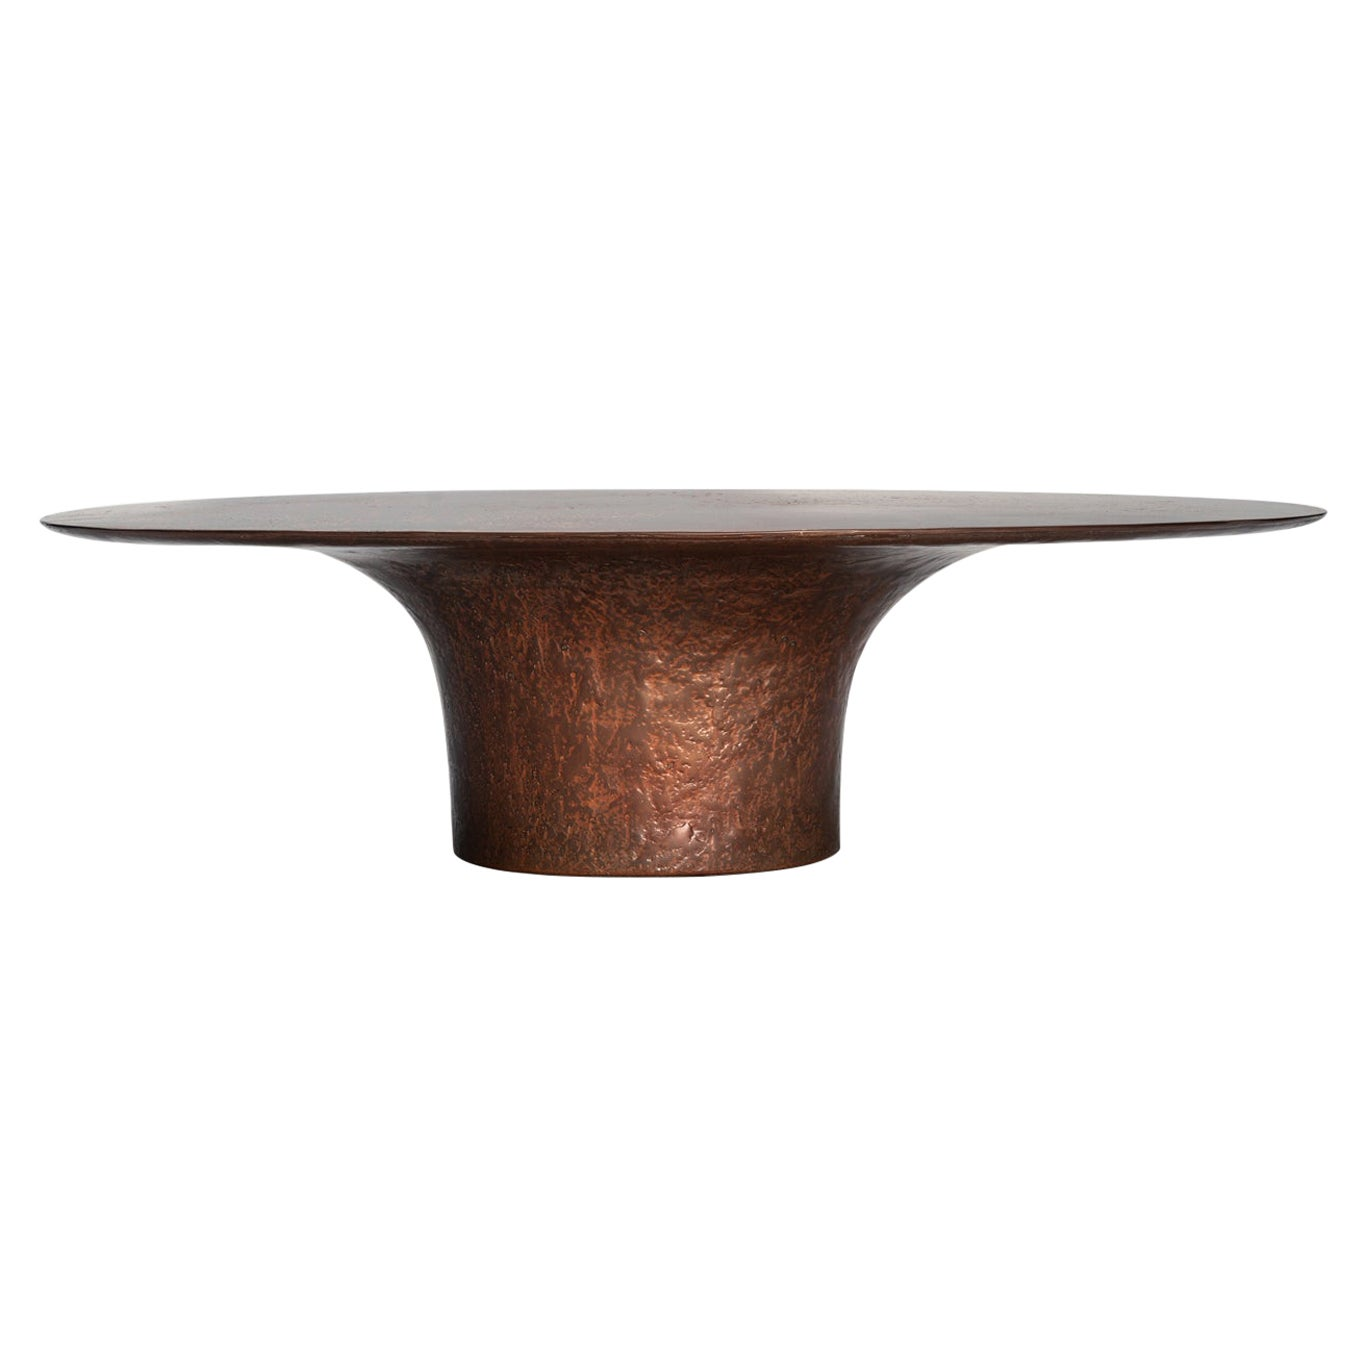 NR Copper Finish Bronze Powdered Resin Coated Cast Metal Low Table